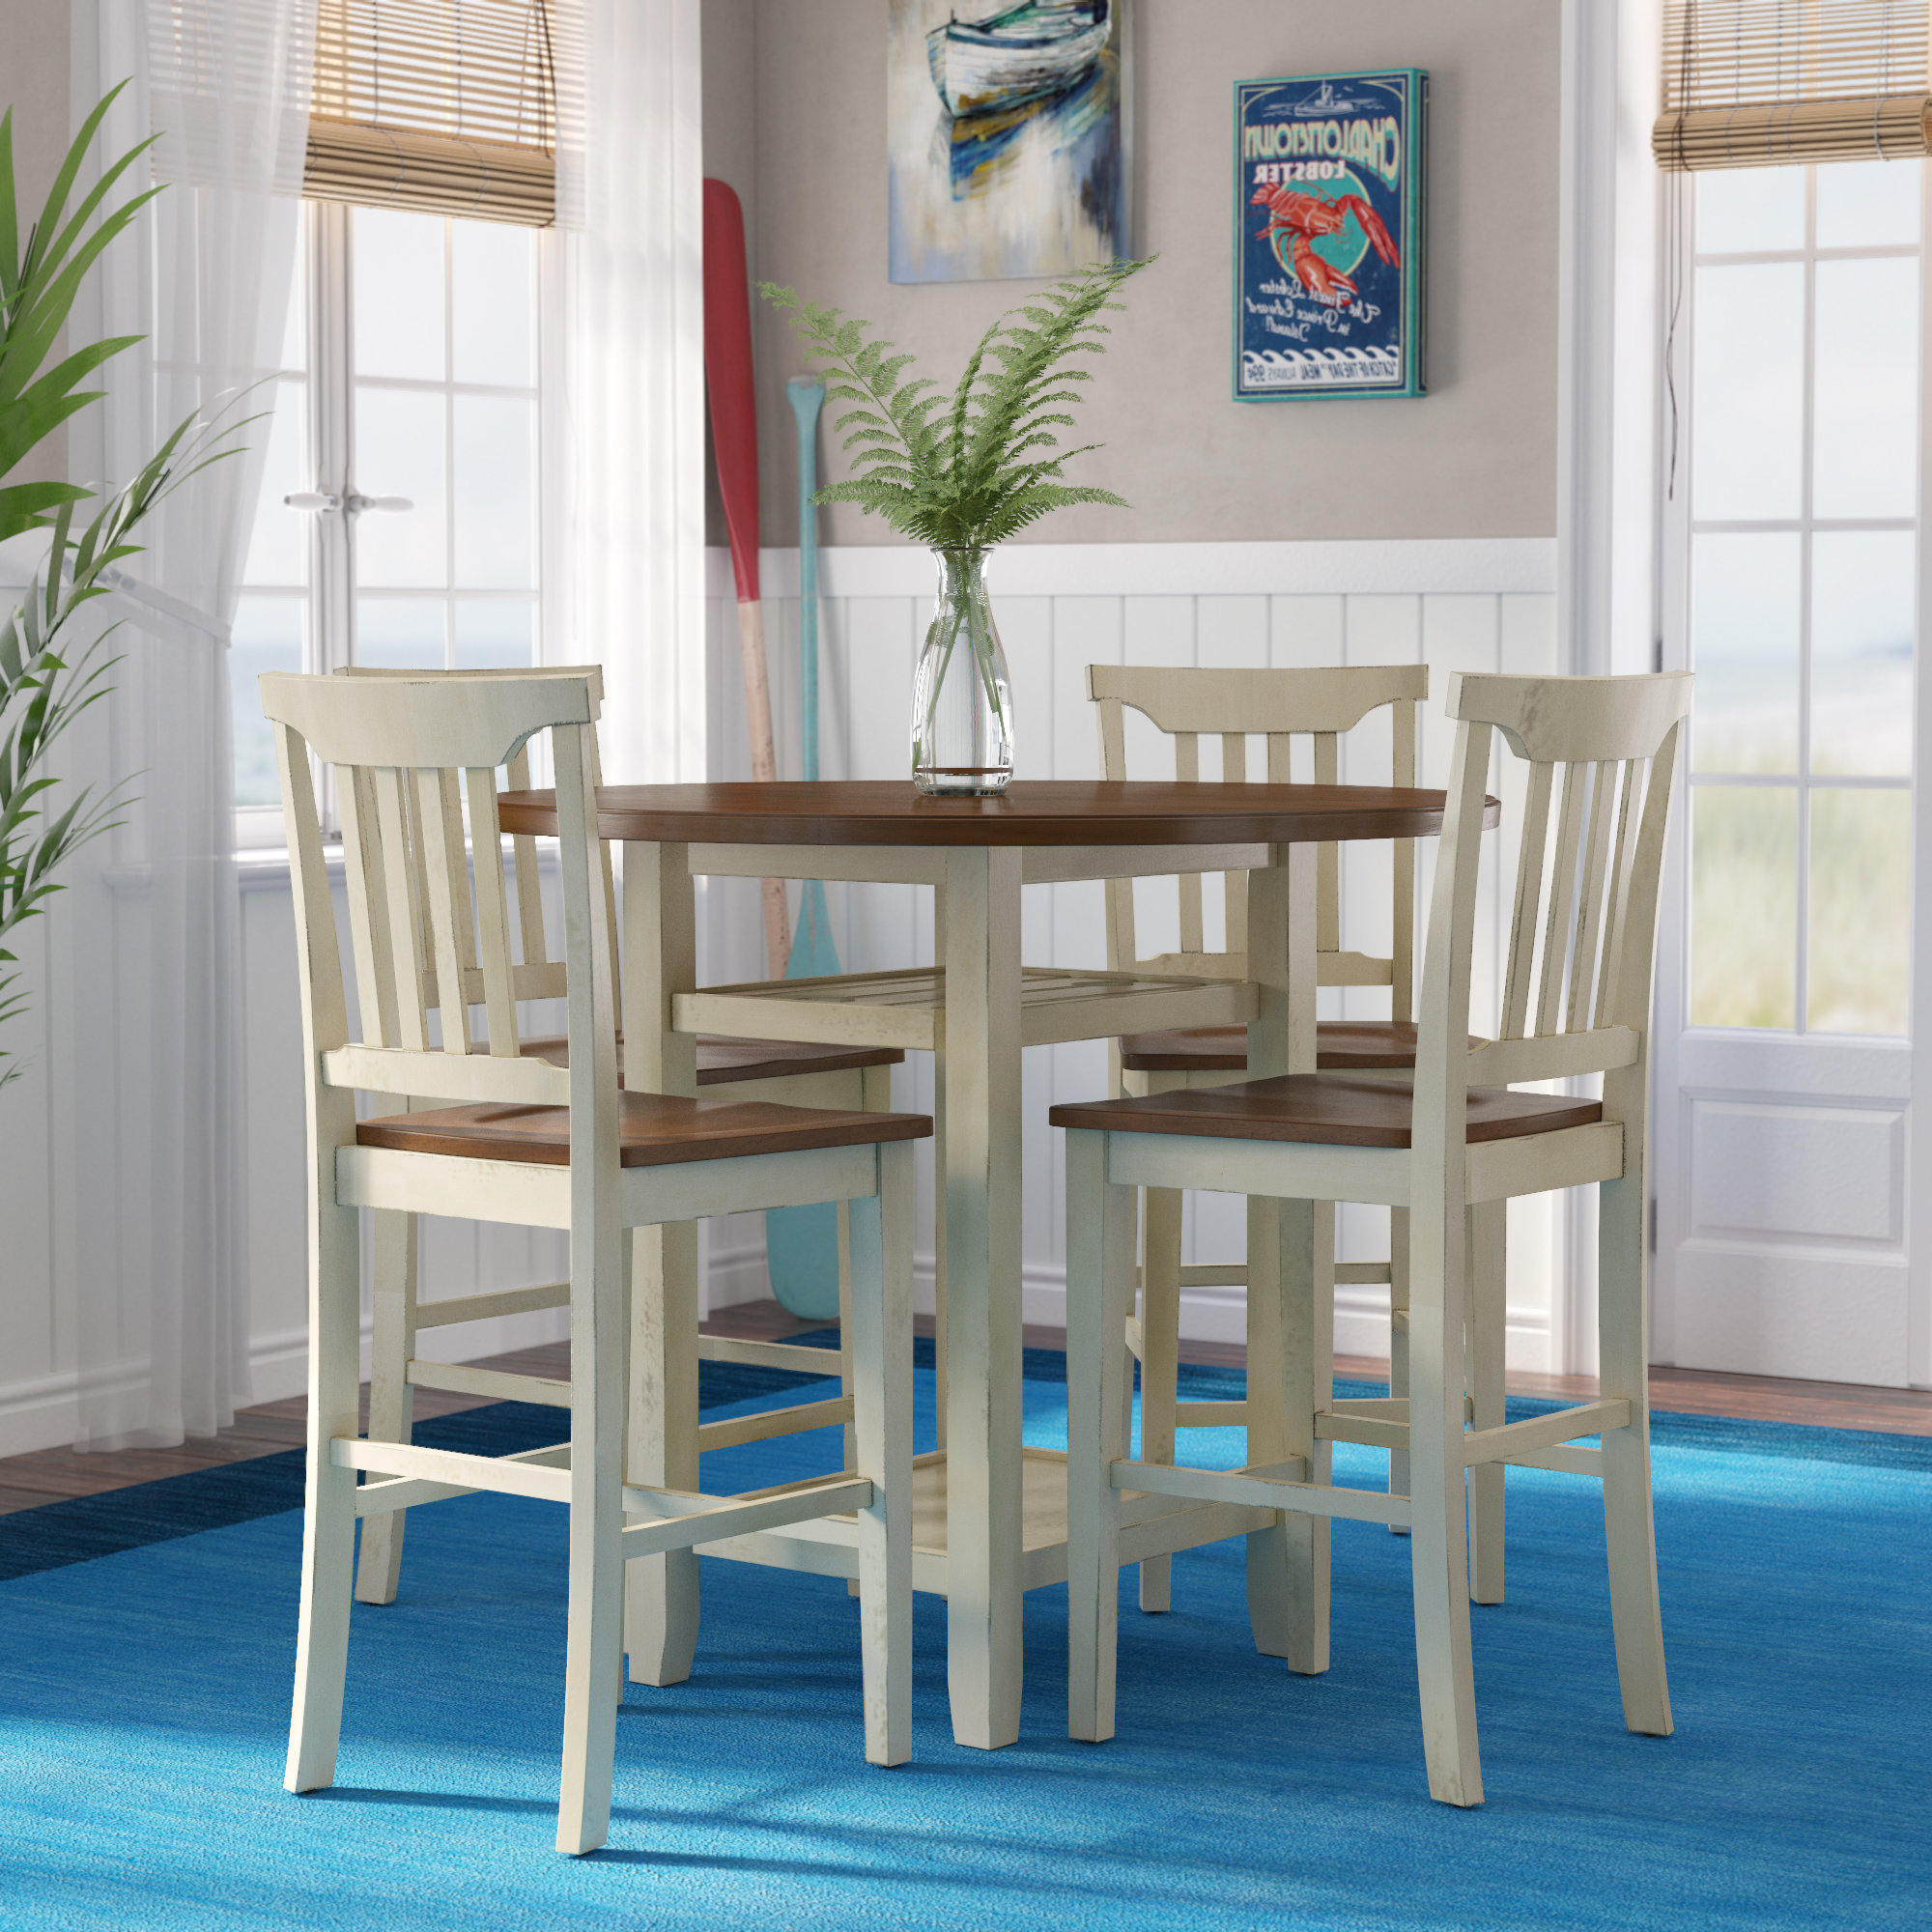 Famous 5 Piece Breakfast Nook Dining Sets Pertaining To Eastep 5 Piece Counter Height Breakfast Nook Dining Set (View 20 of 20)